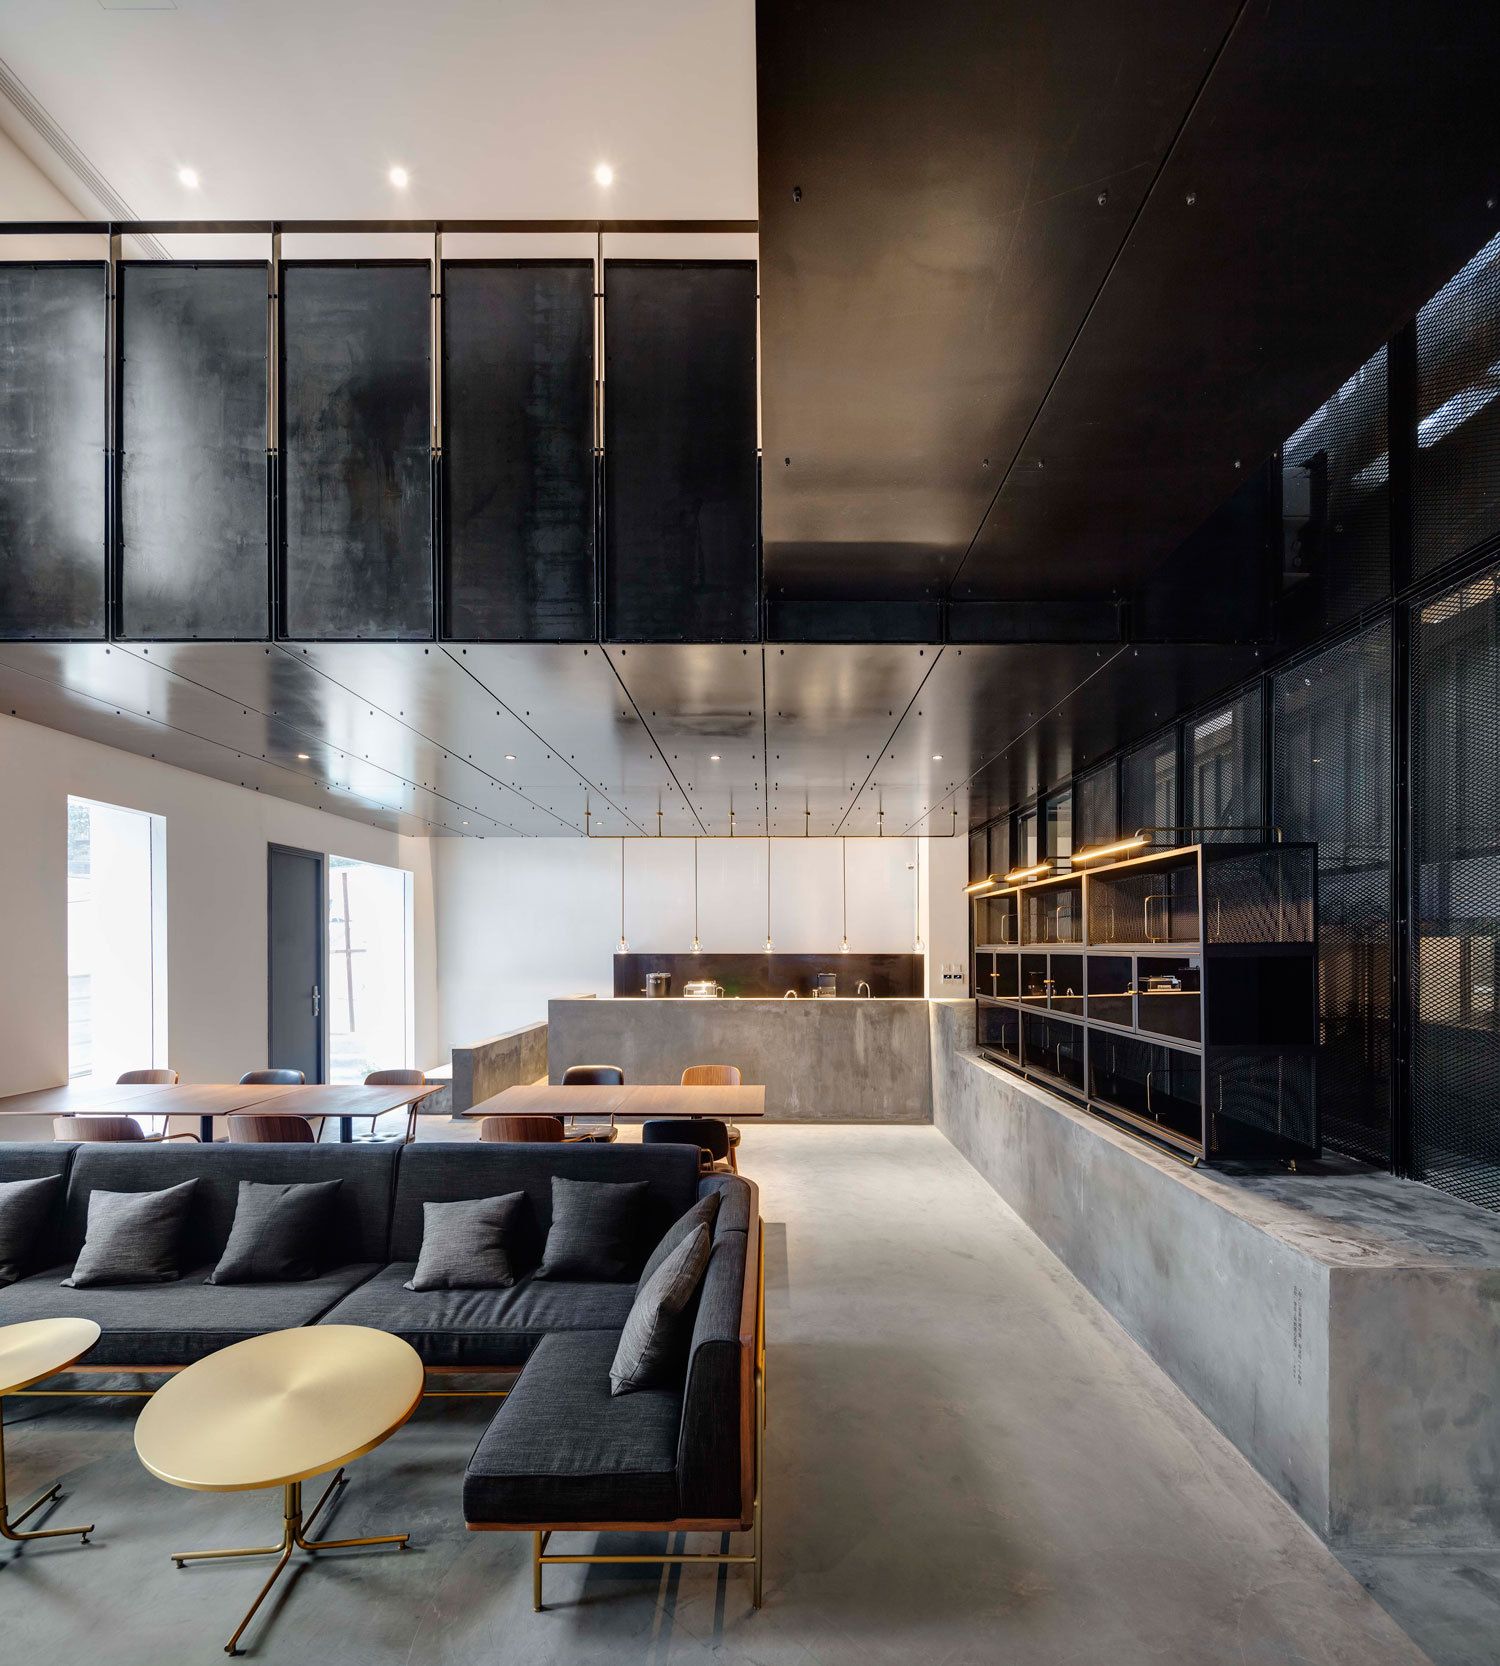 The Garage by Neri Hu Design & Research Office | Yellowtrace